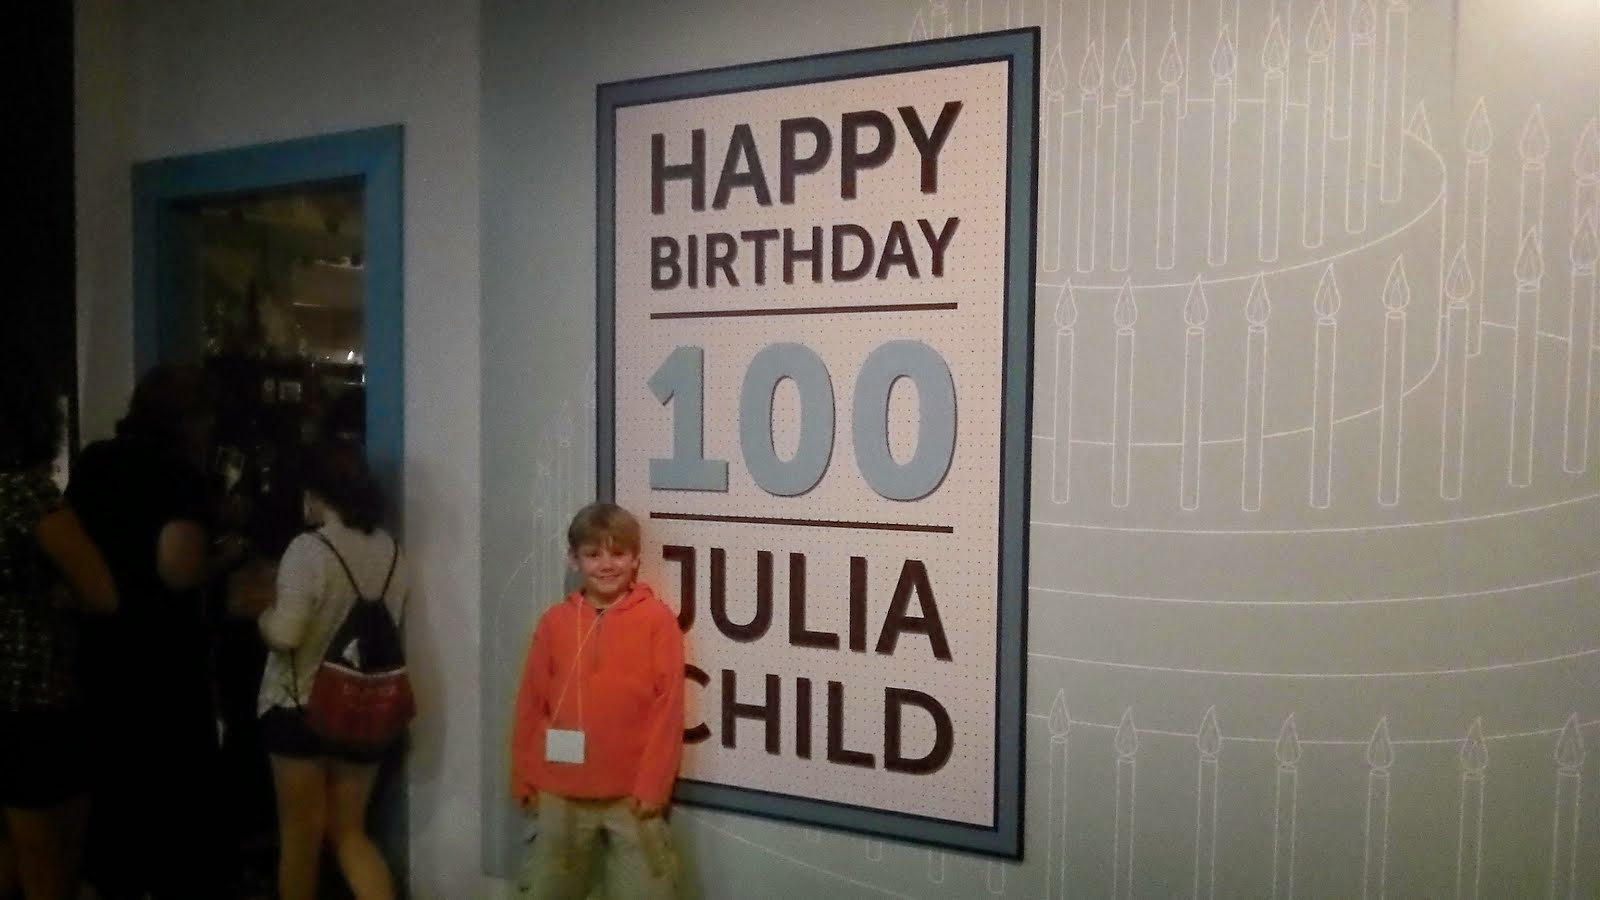 Julia Child's Birthday